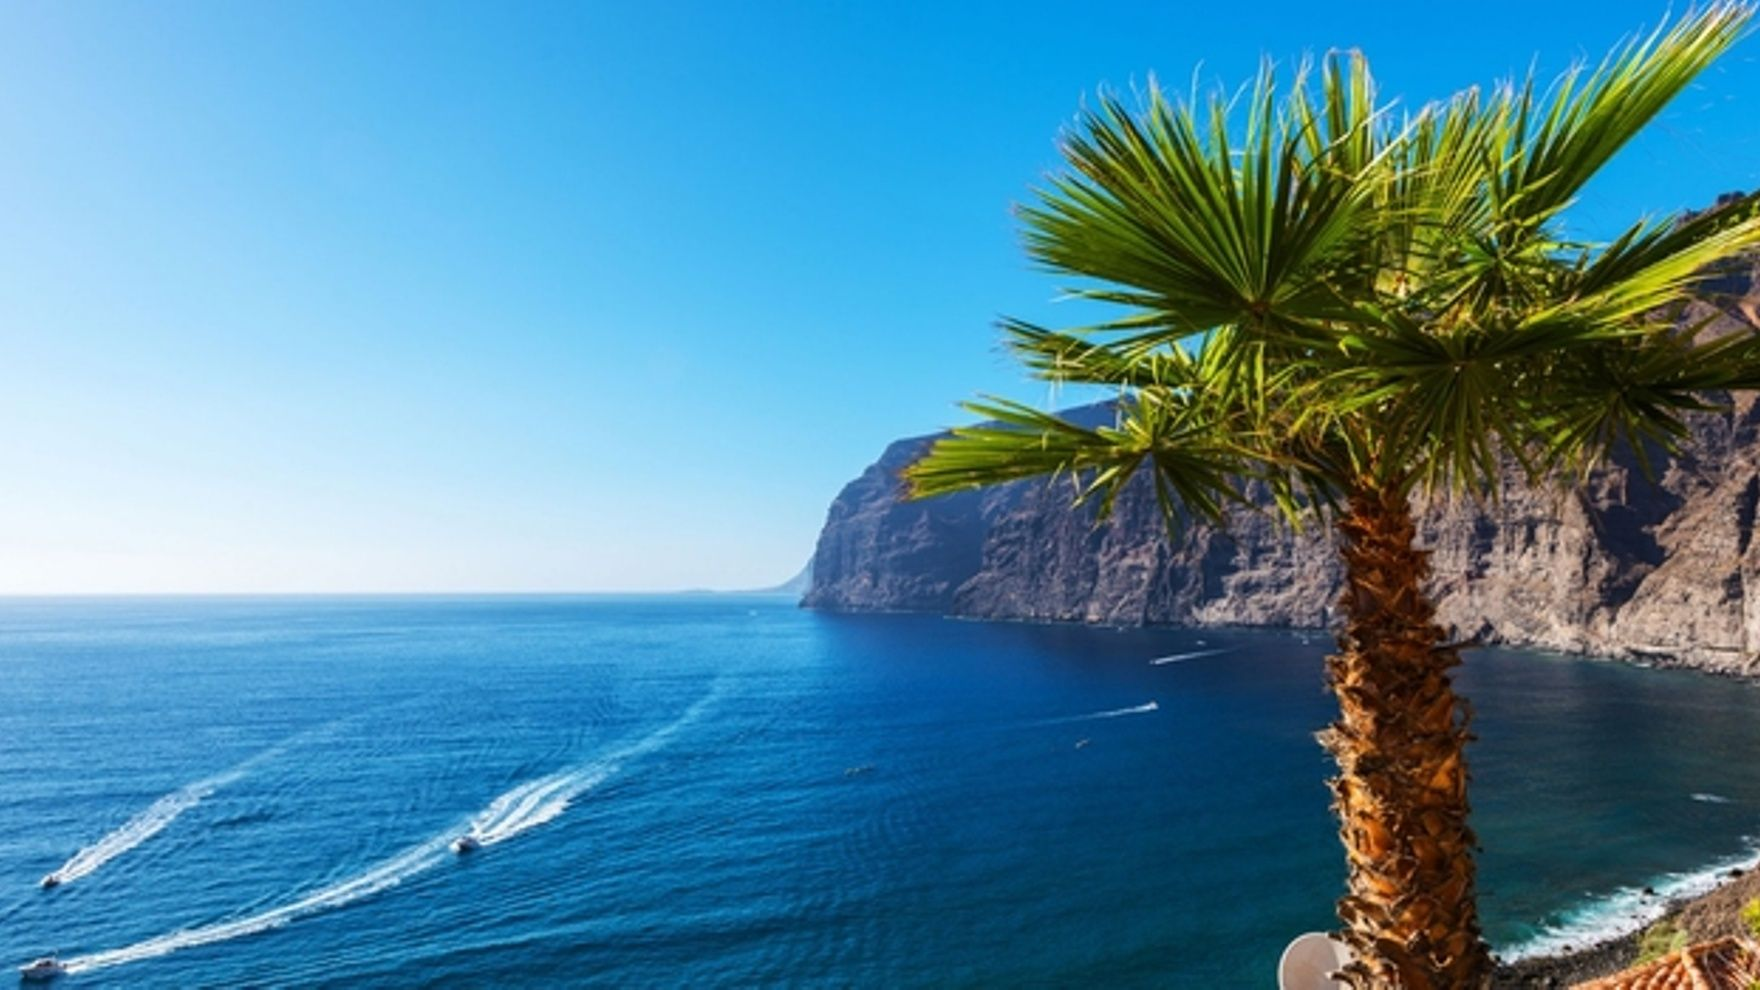 New Year in the Canary Islands